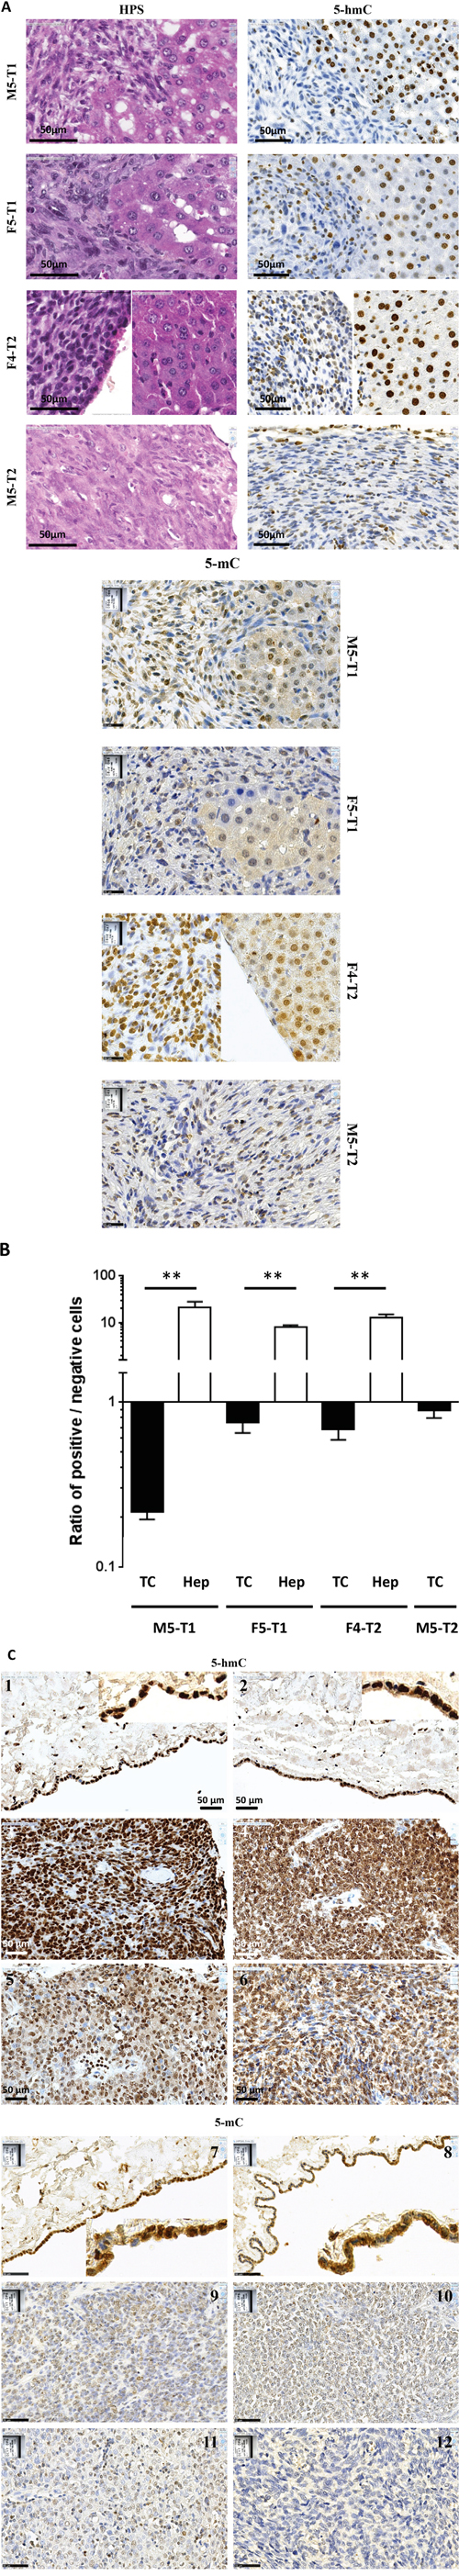 Immunohistochemical staining for 5-hmC of rat and human mesotheliomas.